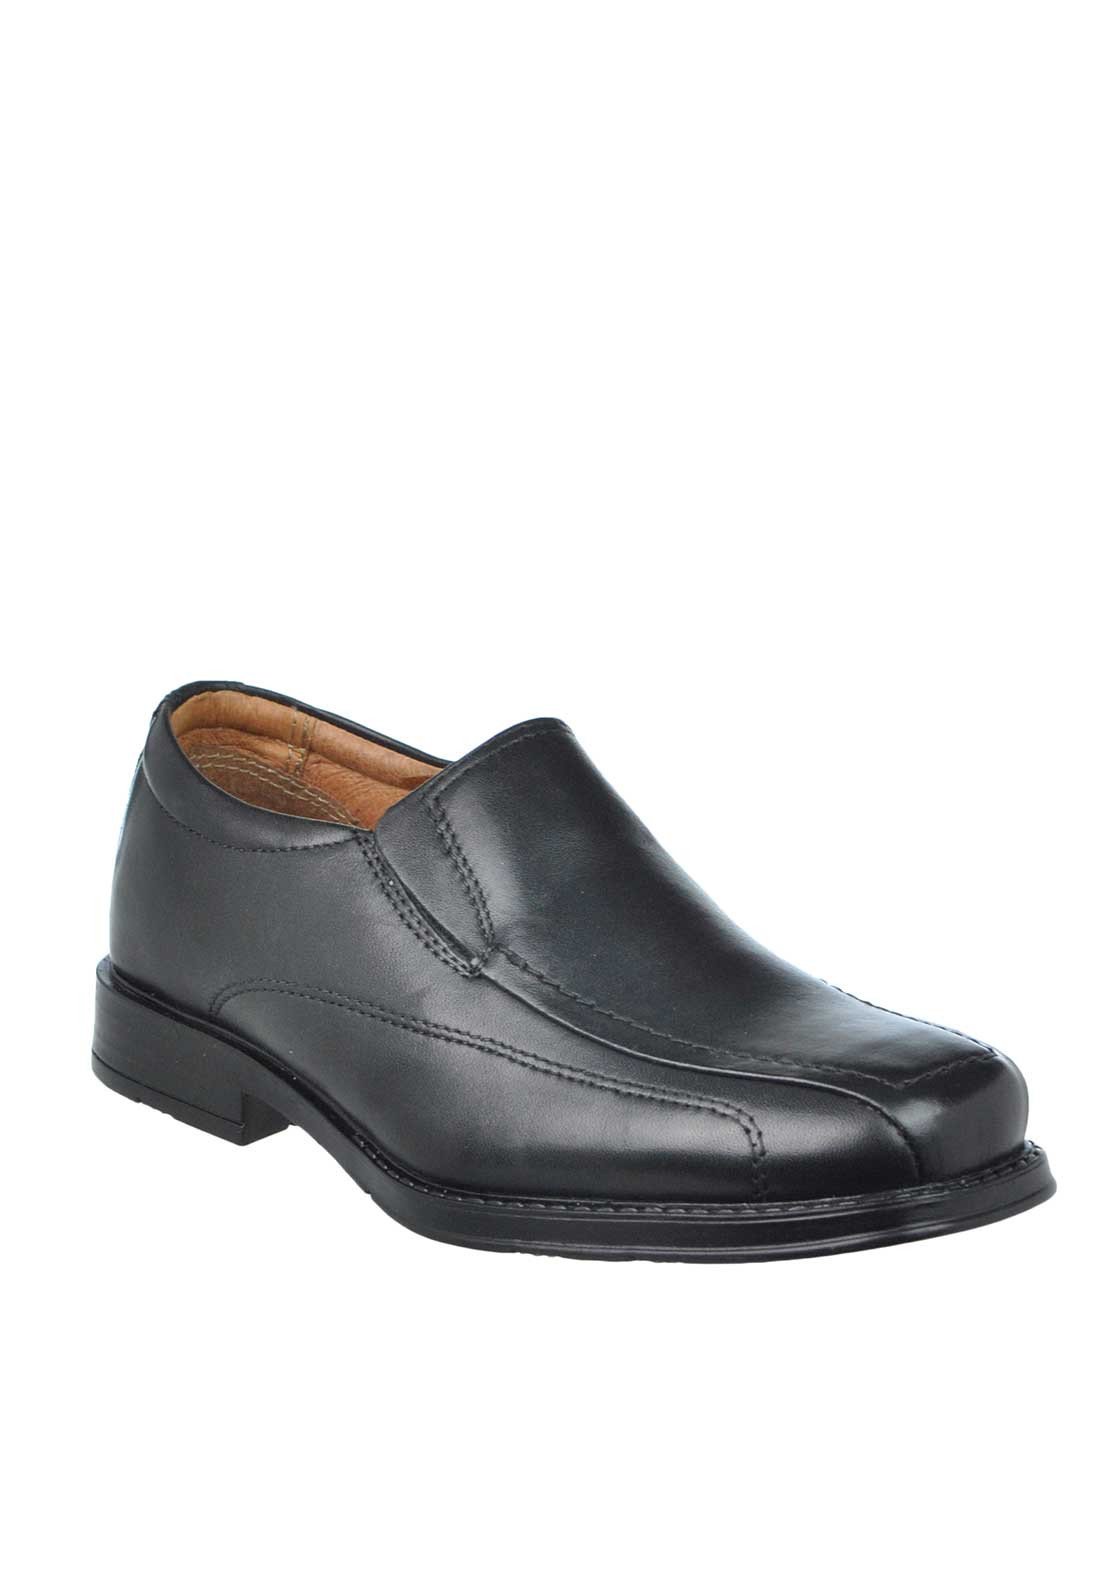 Dubarry Boys Geff Leather Slip On Loafer Shoes, Black